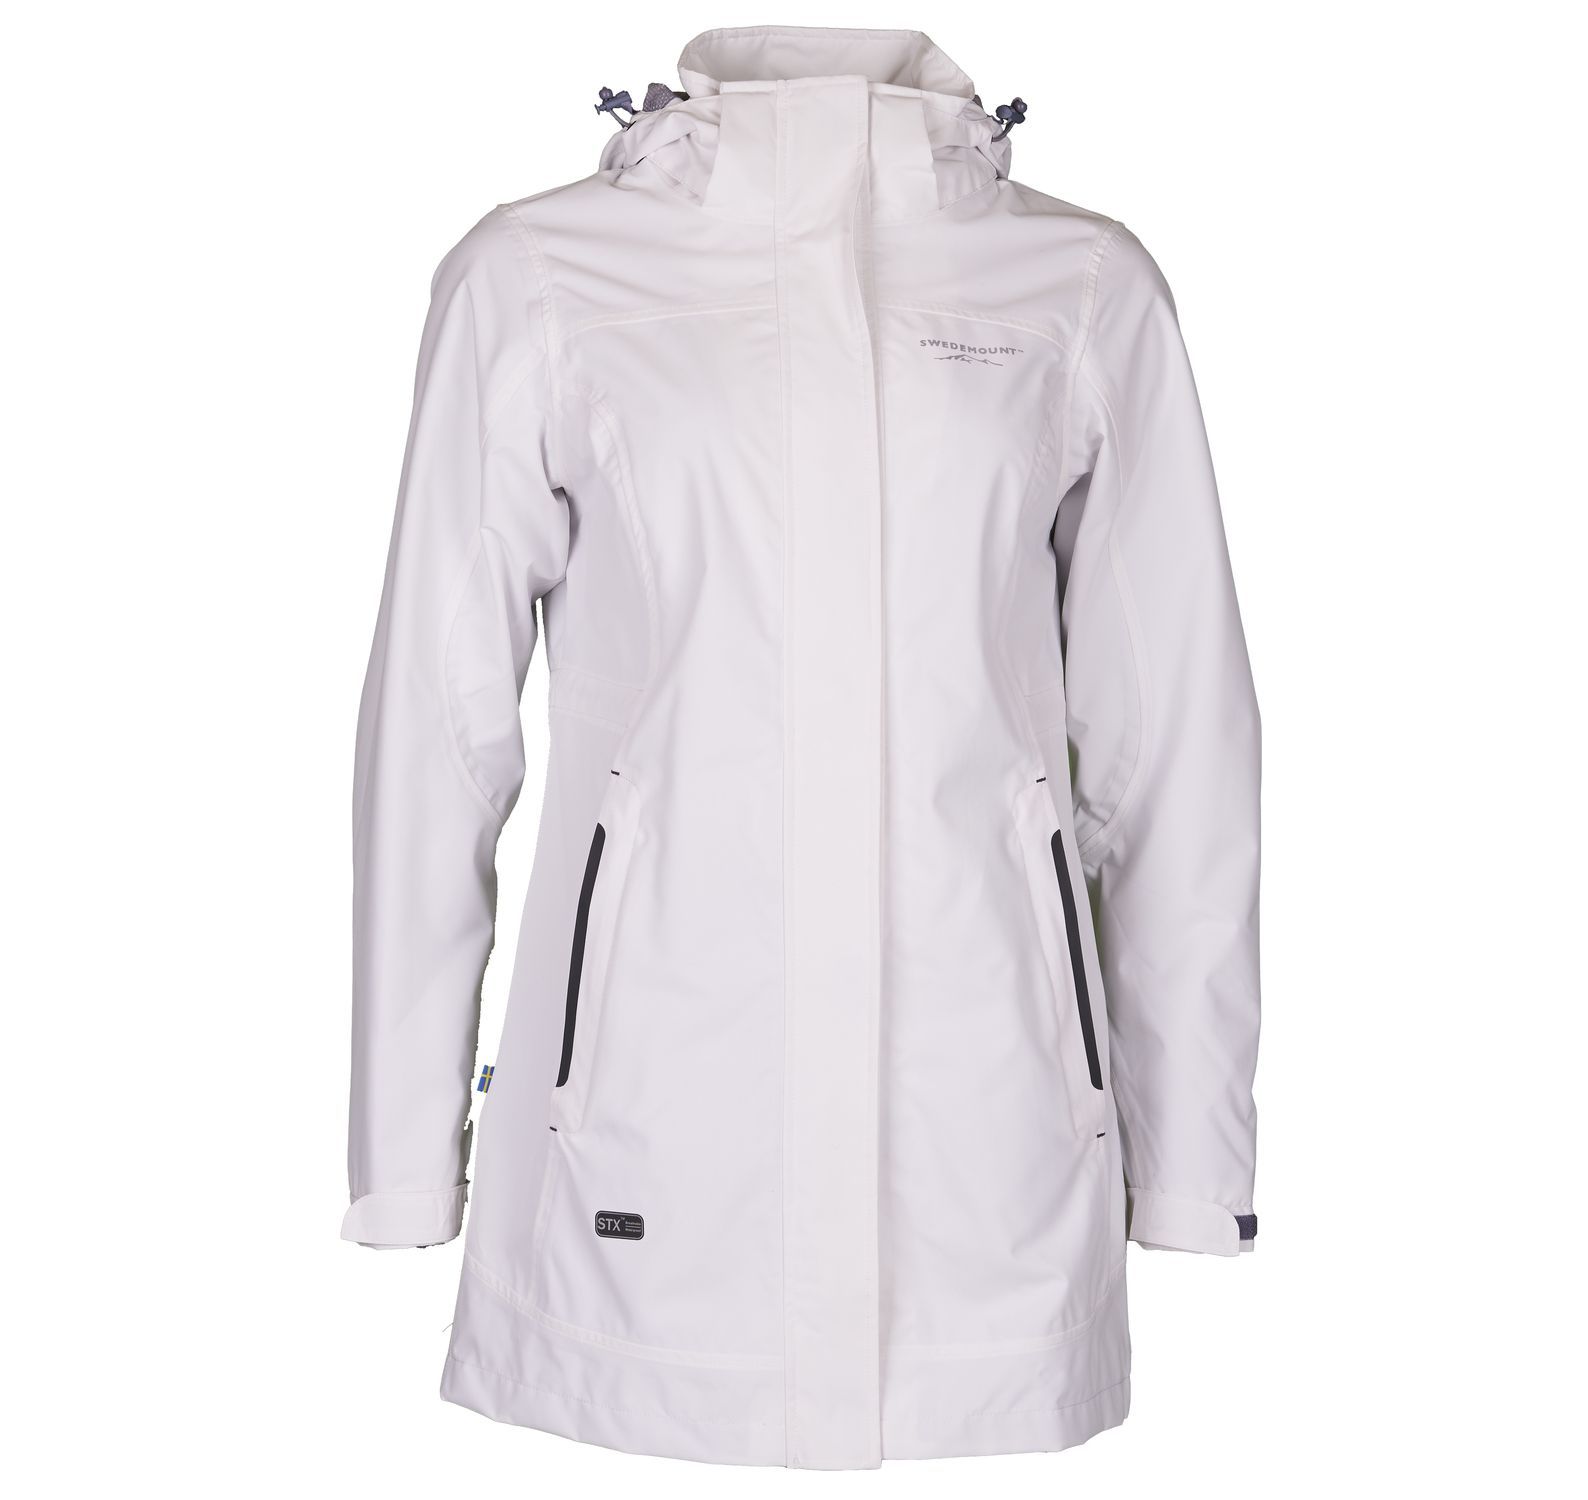 Musö Raincoat W, White, 48, Regnkläder